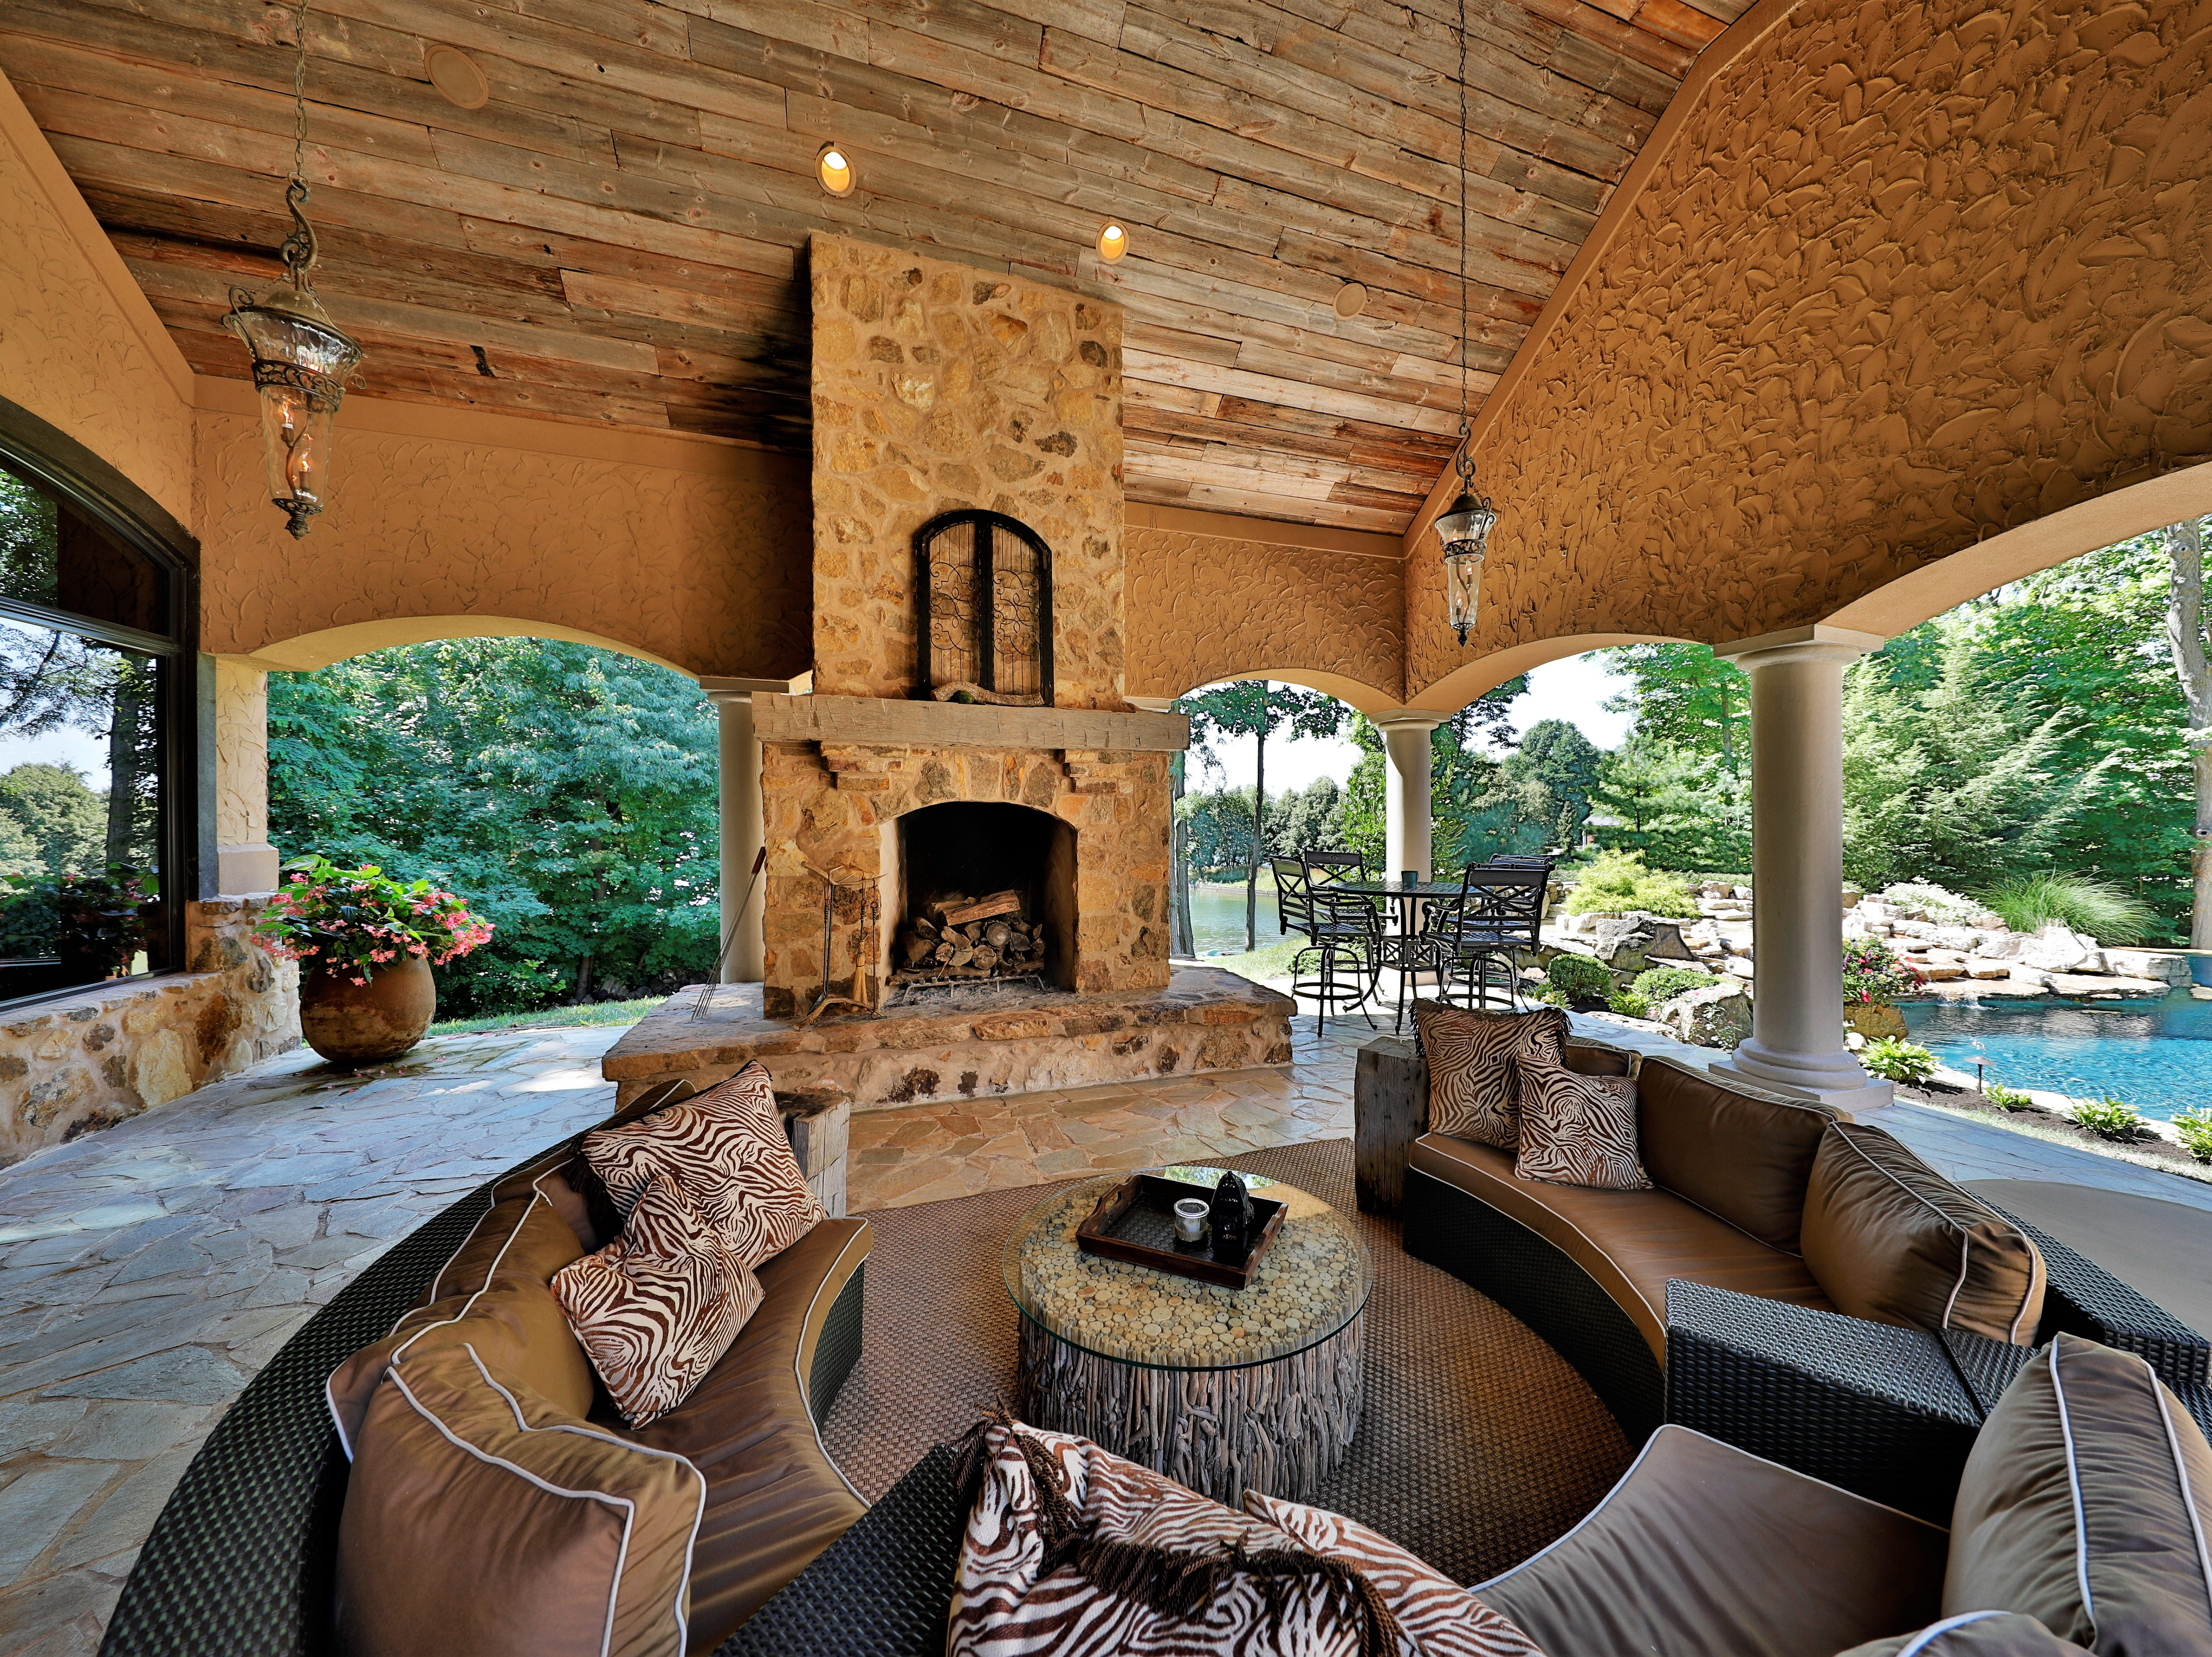 Across from the outdoor kitchen is a stone fireplace and large living area with water views.